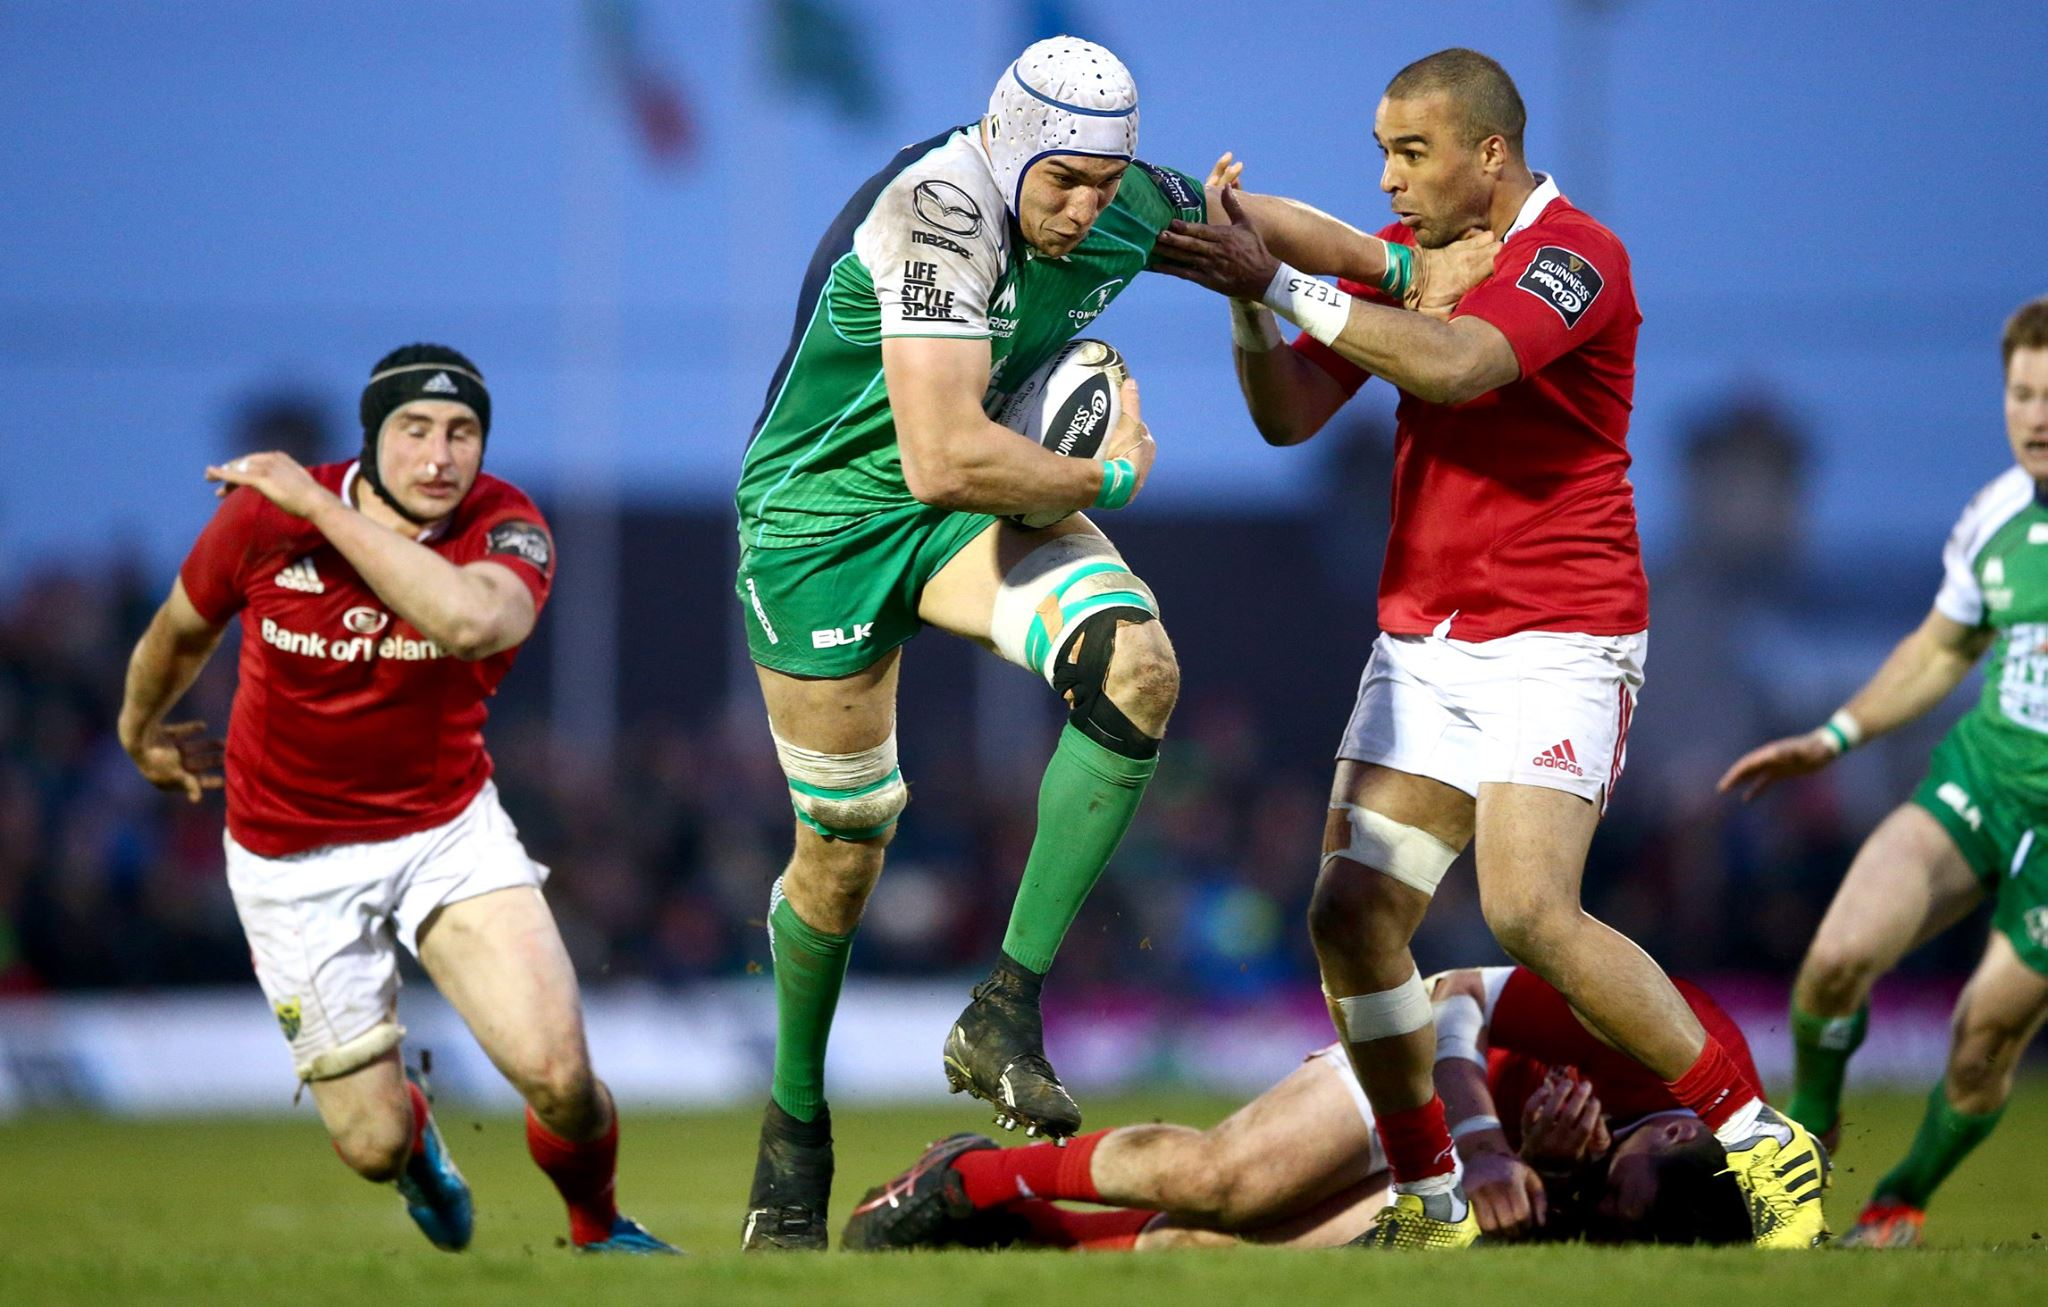 Guinness PRO12: in classifica volano Connacht e Leinster